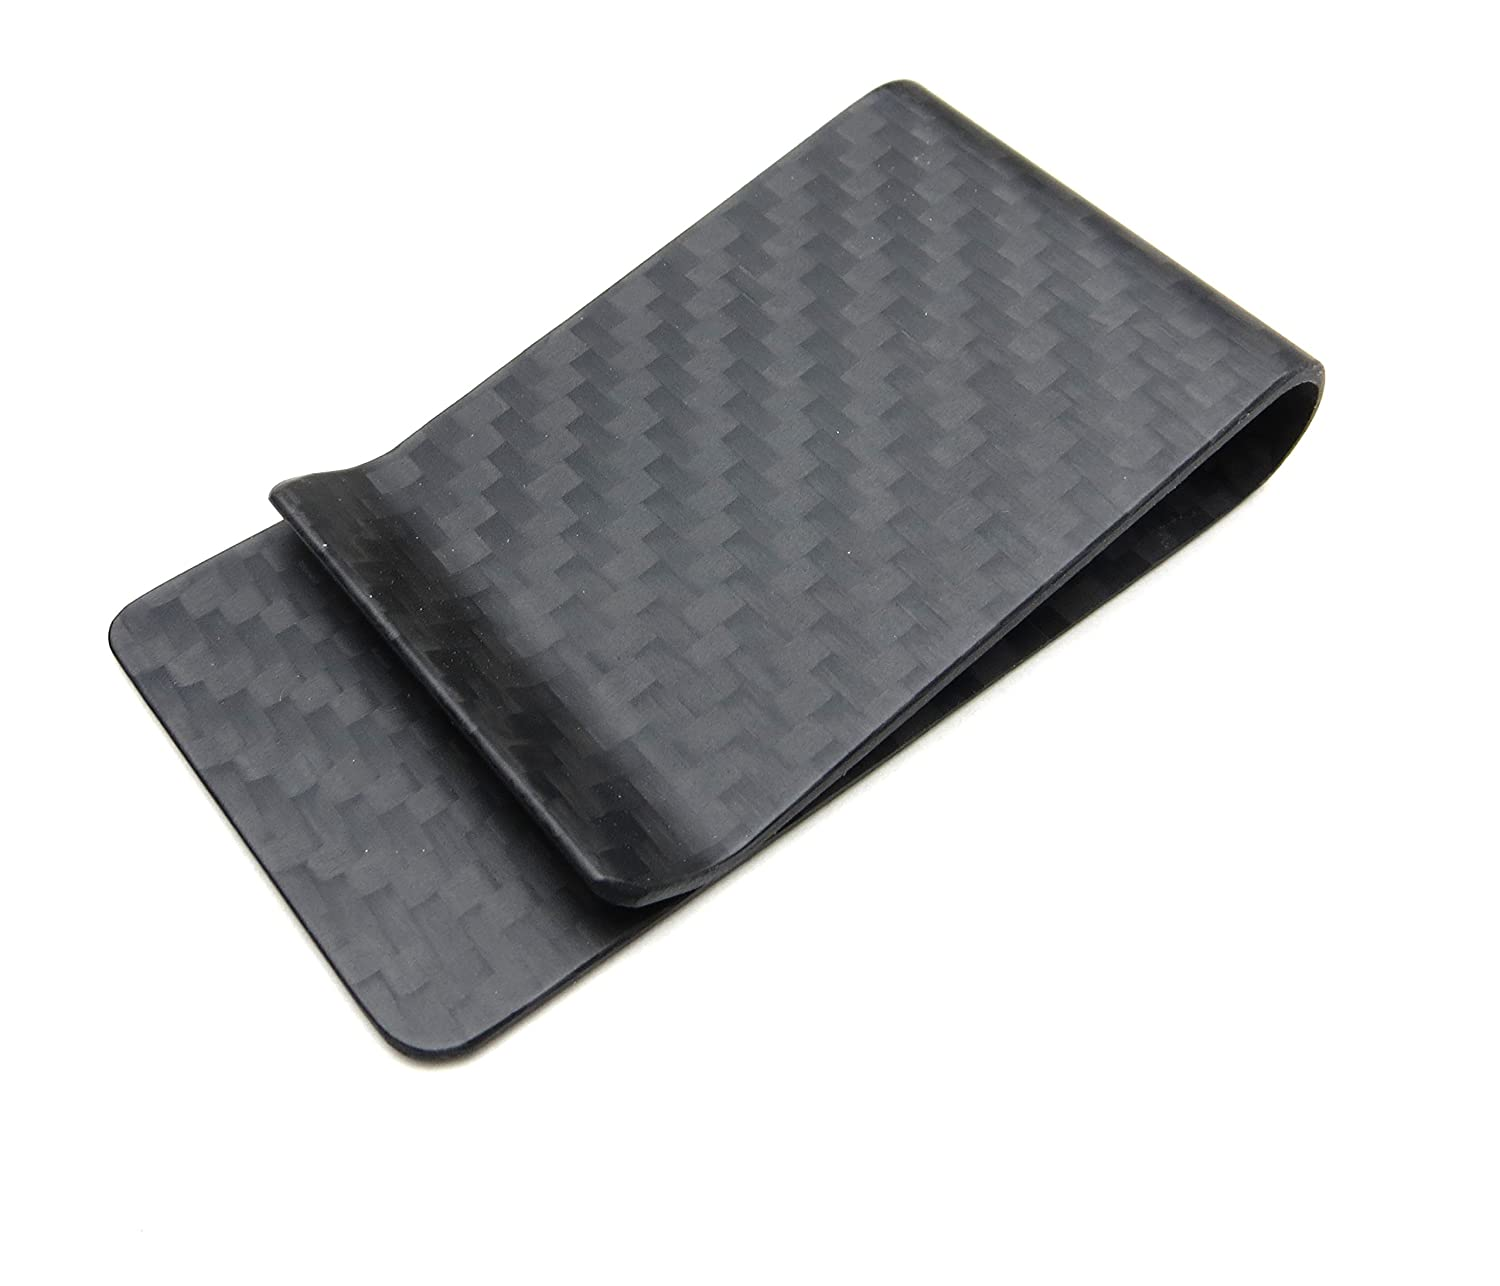 Amazon mcupper real carbon fiber money clip business card carbon fiber money clip genuine 3k weave fits up to 15 cards strong and magicingreecefo Gallery